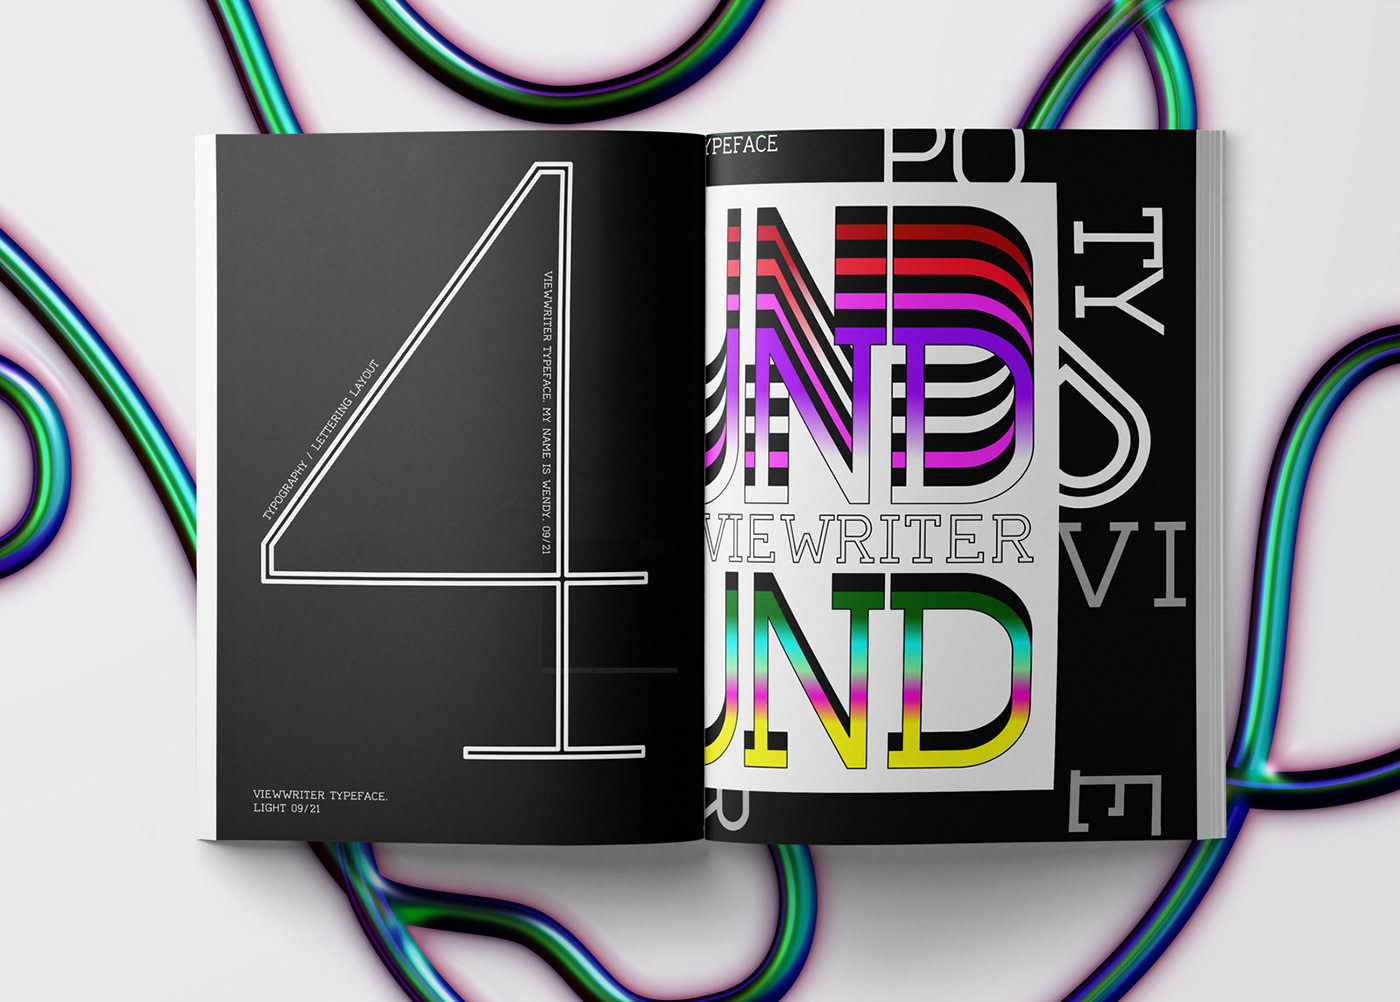 Viewwriter is a typeface created in the software Fontlab dedicated to the creation typography